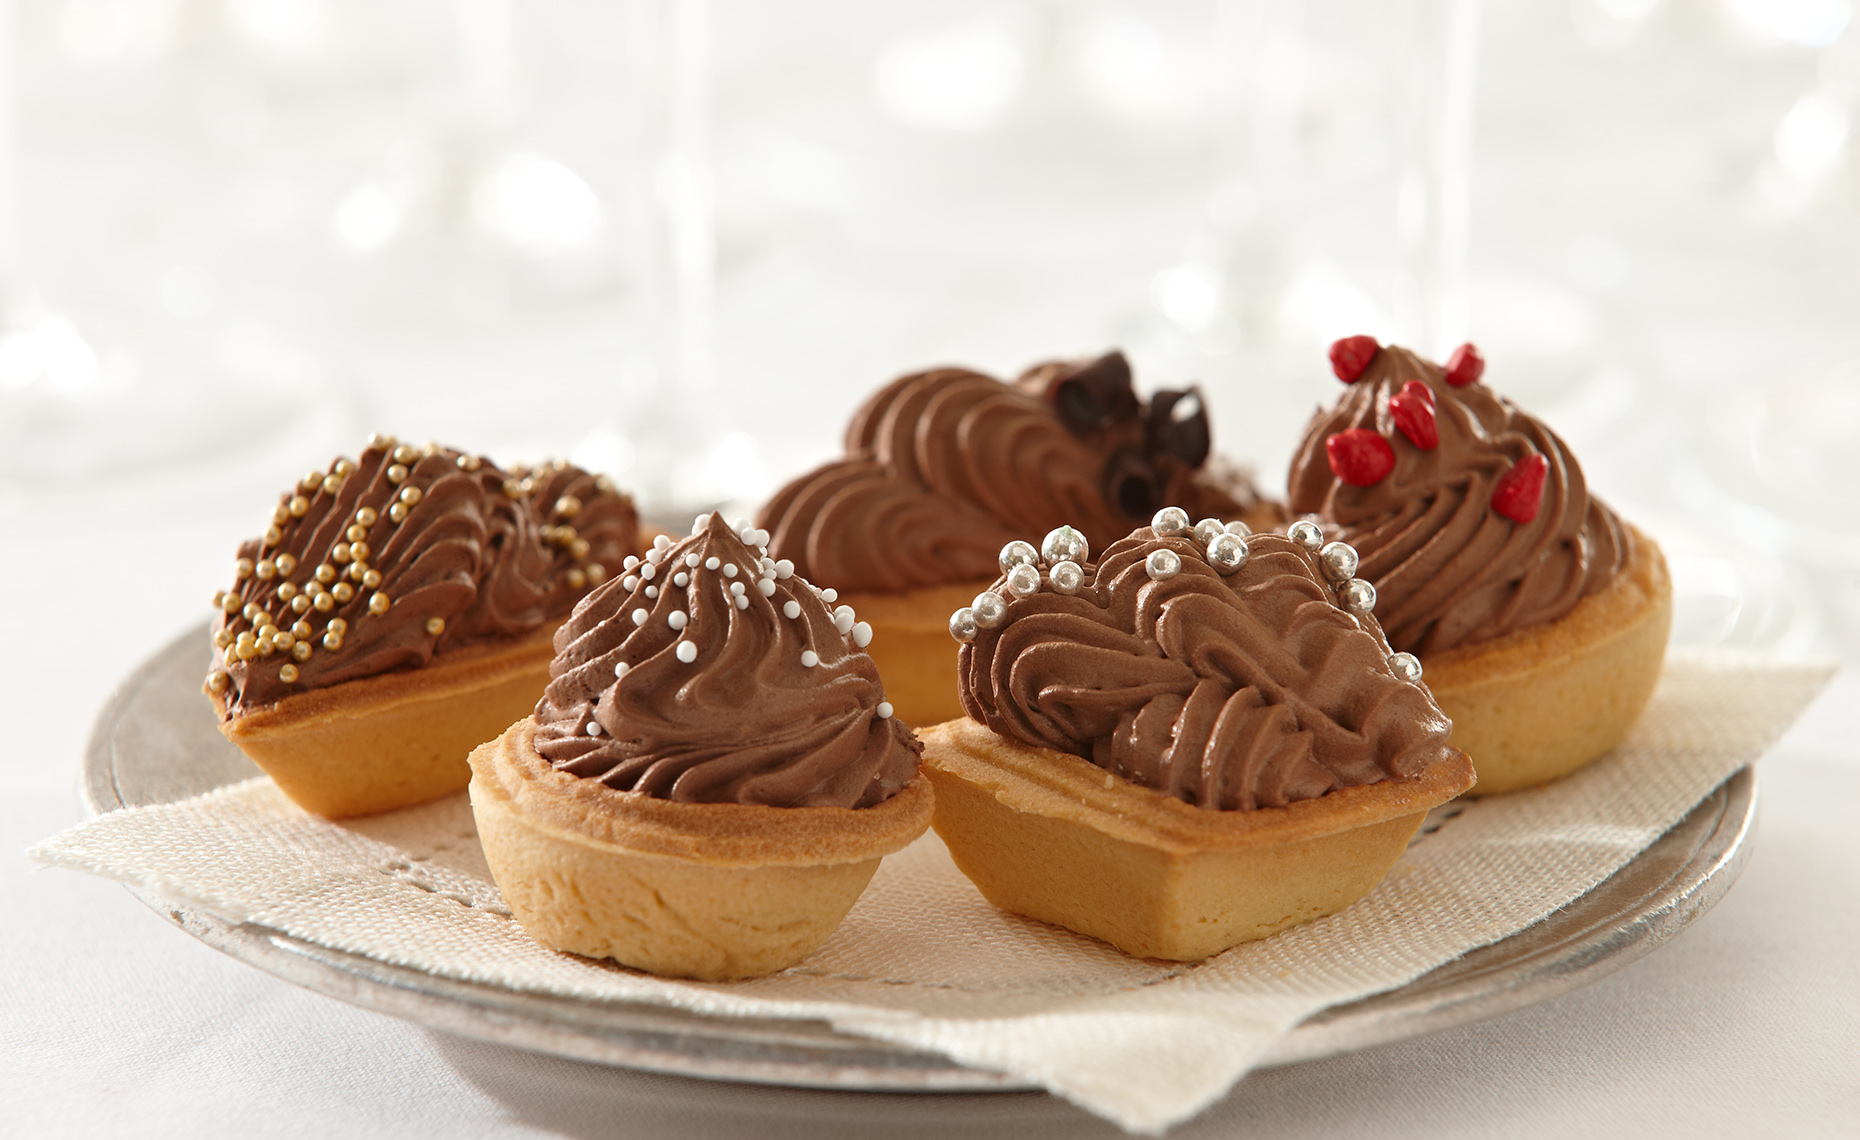 Food Photographer, Cake Photography, Ice Cream Photography, Dessert Photography | Pohuski Studios,  Mini Chocolate Tarts